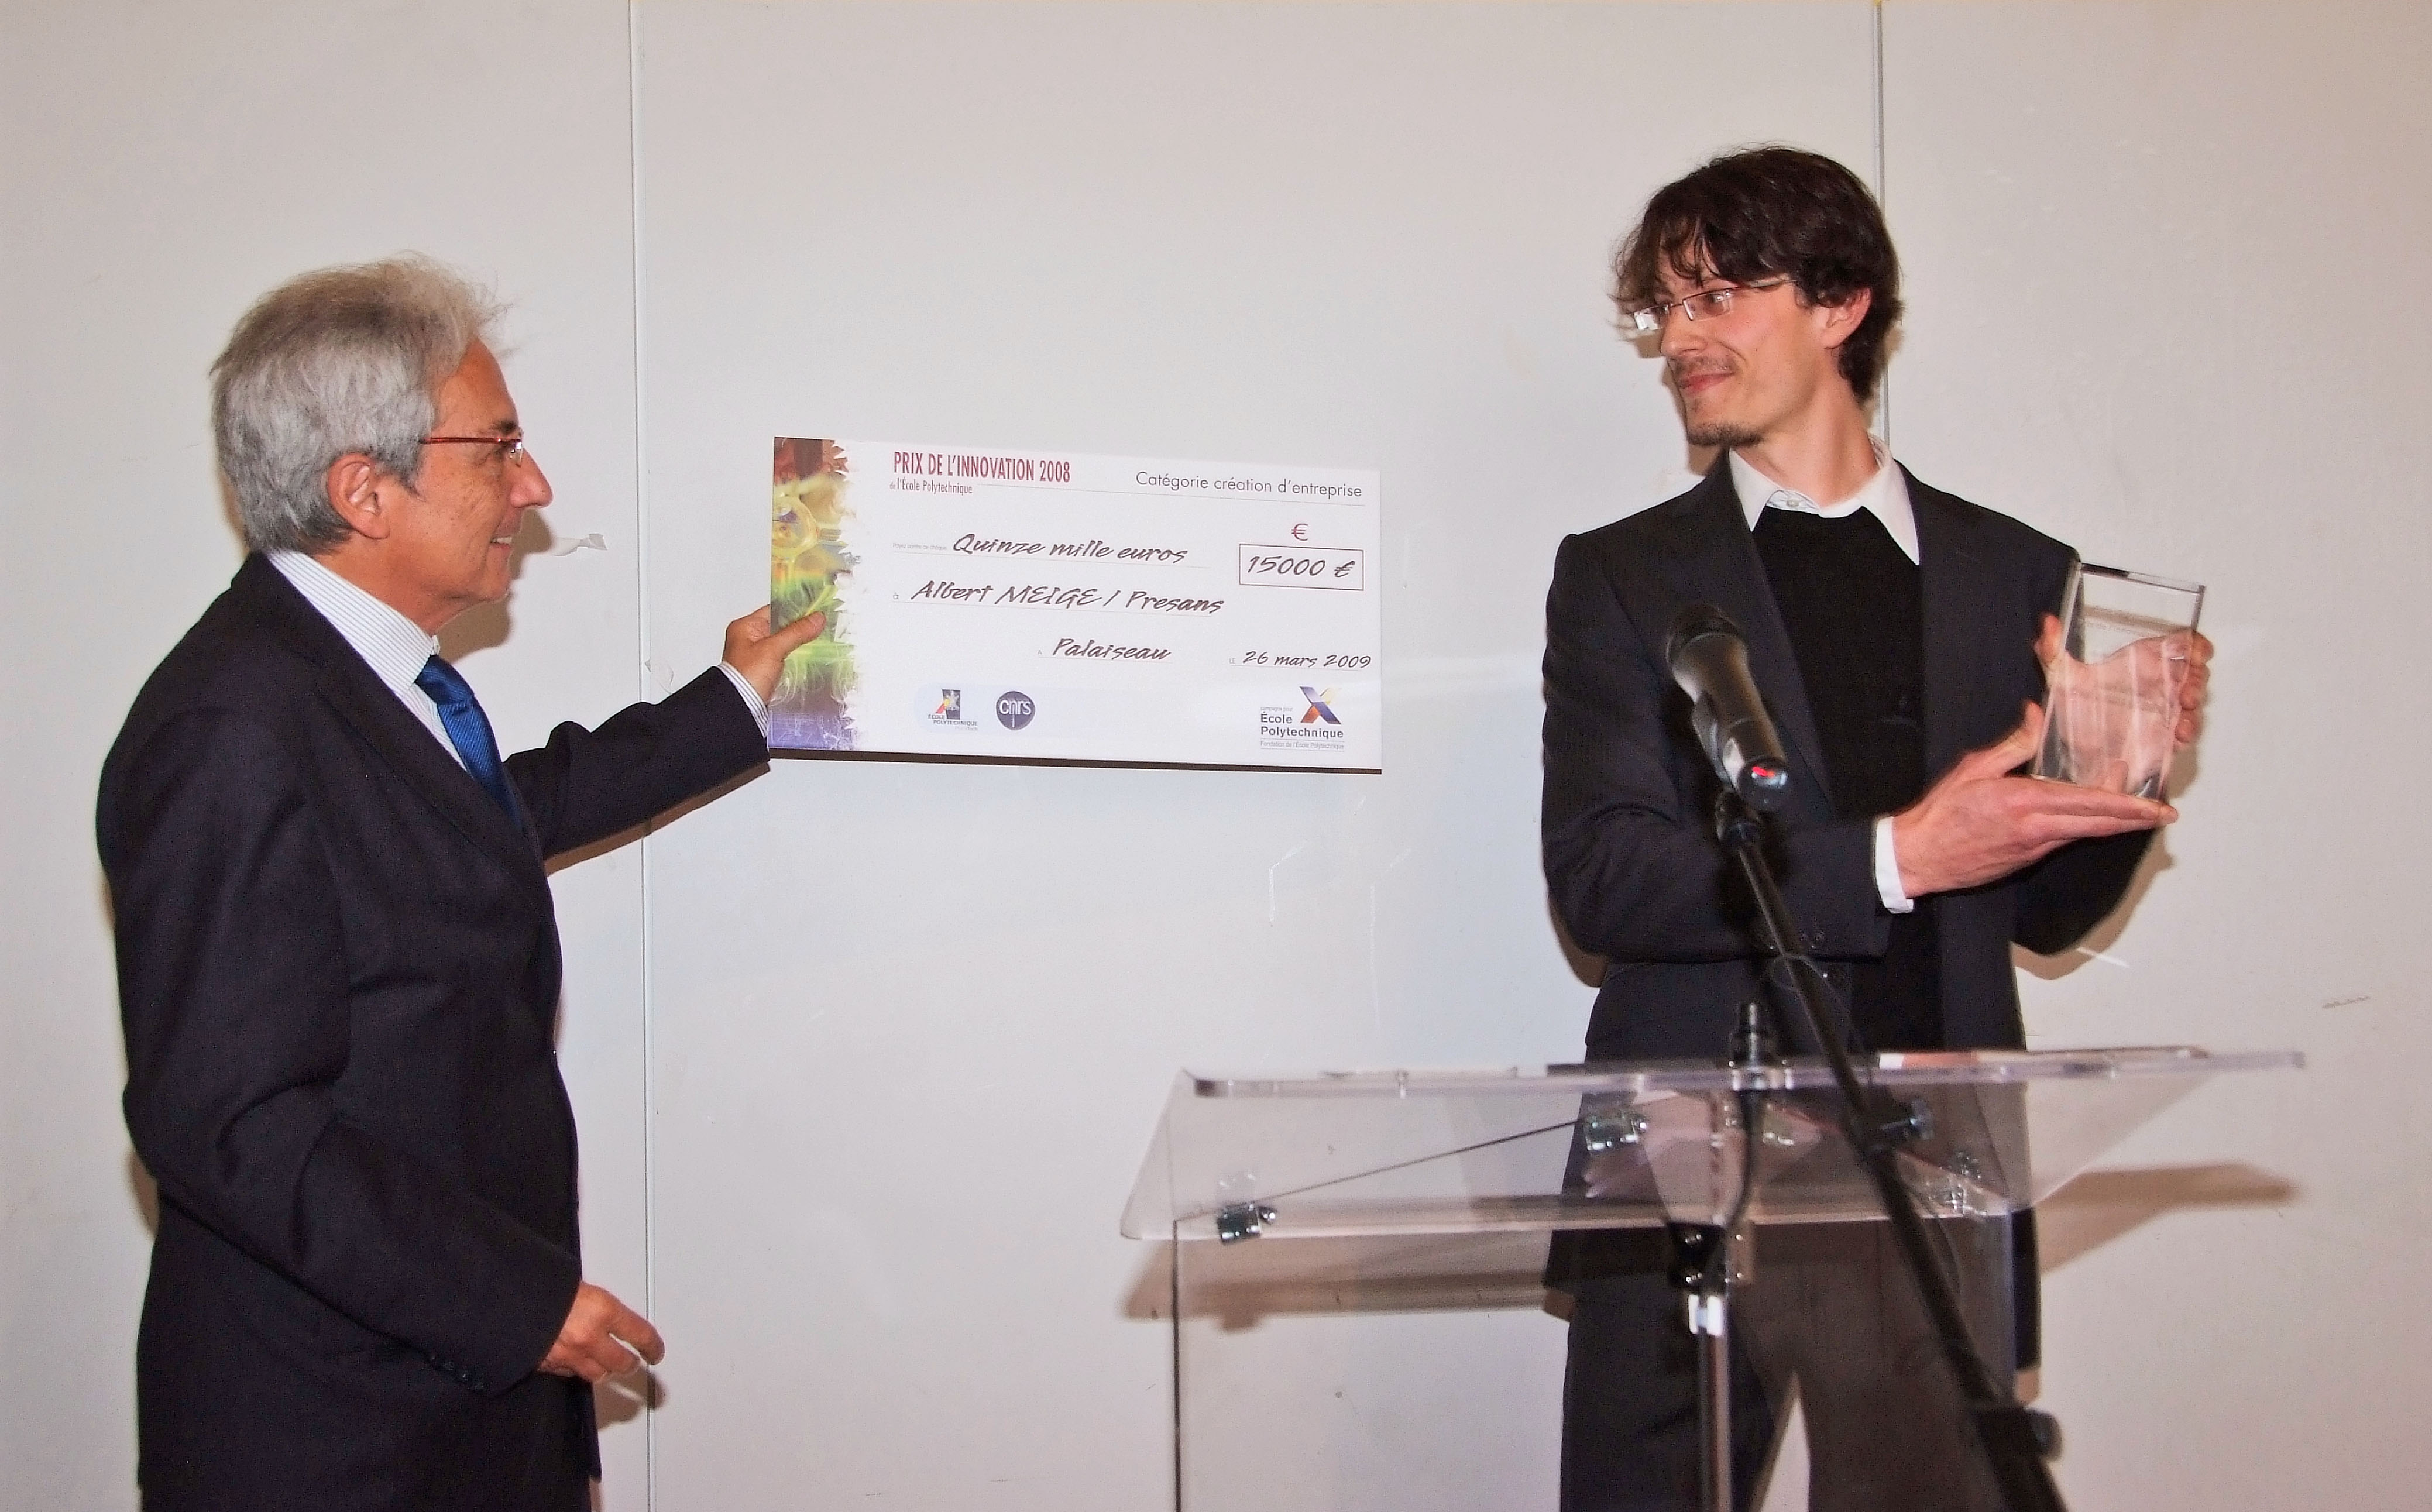 PRESANS receives the Innovation Prize from Albert Fert